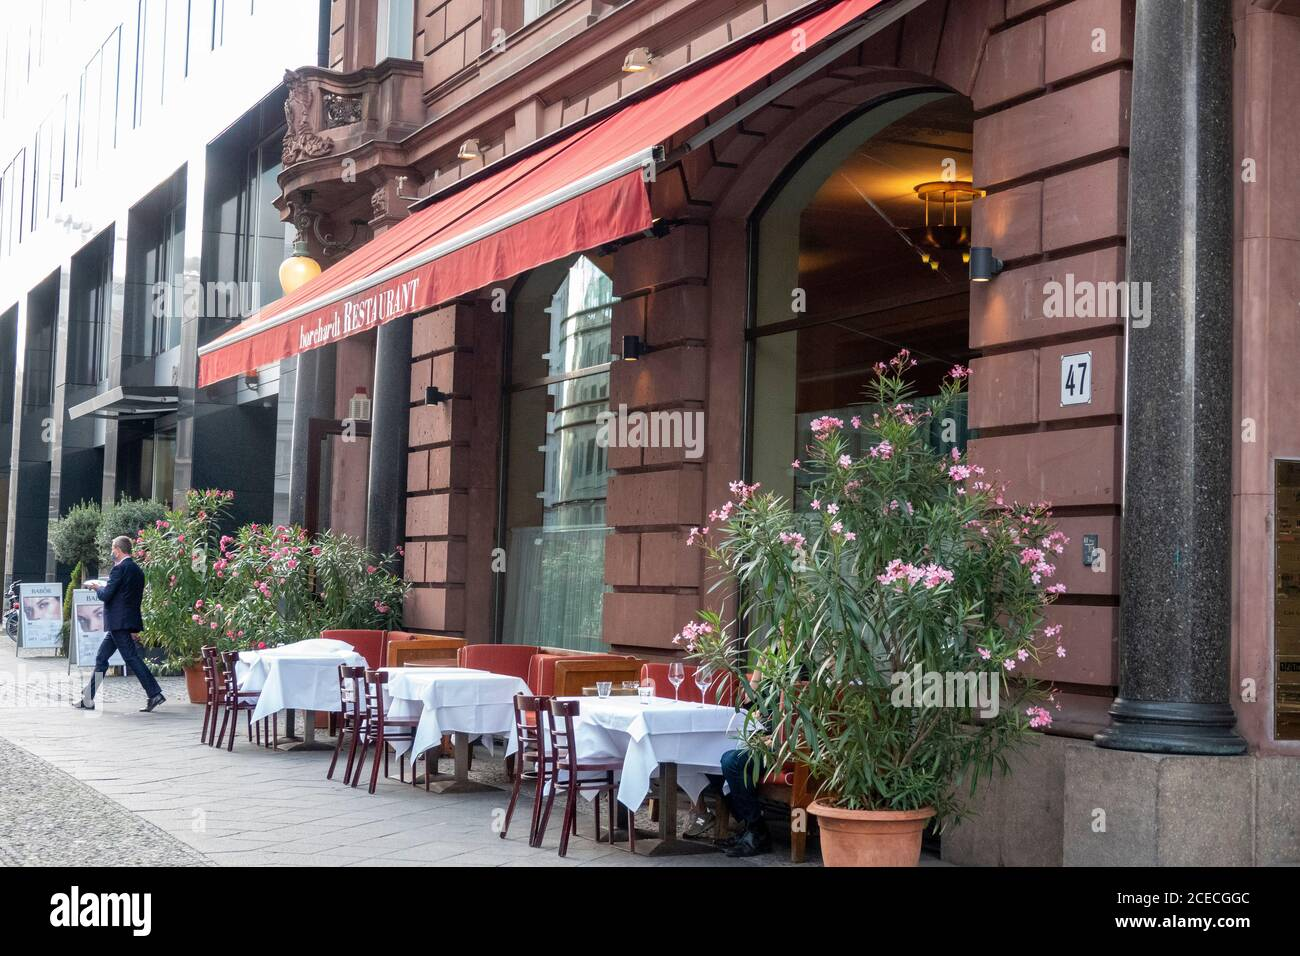 Borchardt Berlin High Resolution Stock Photography And Images Alamy